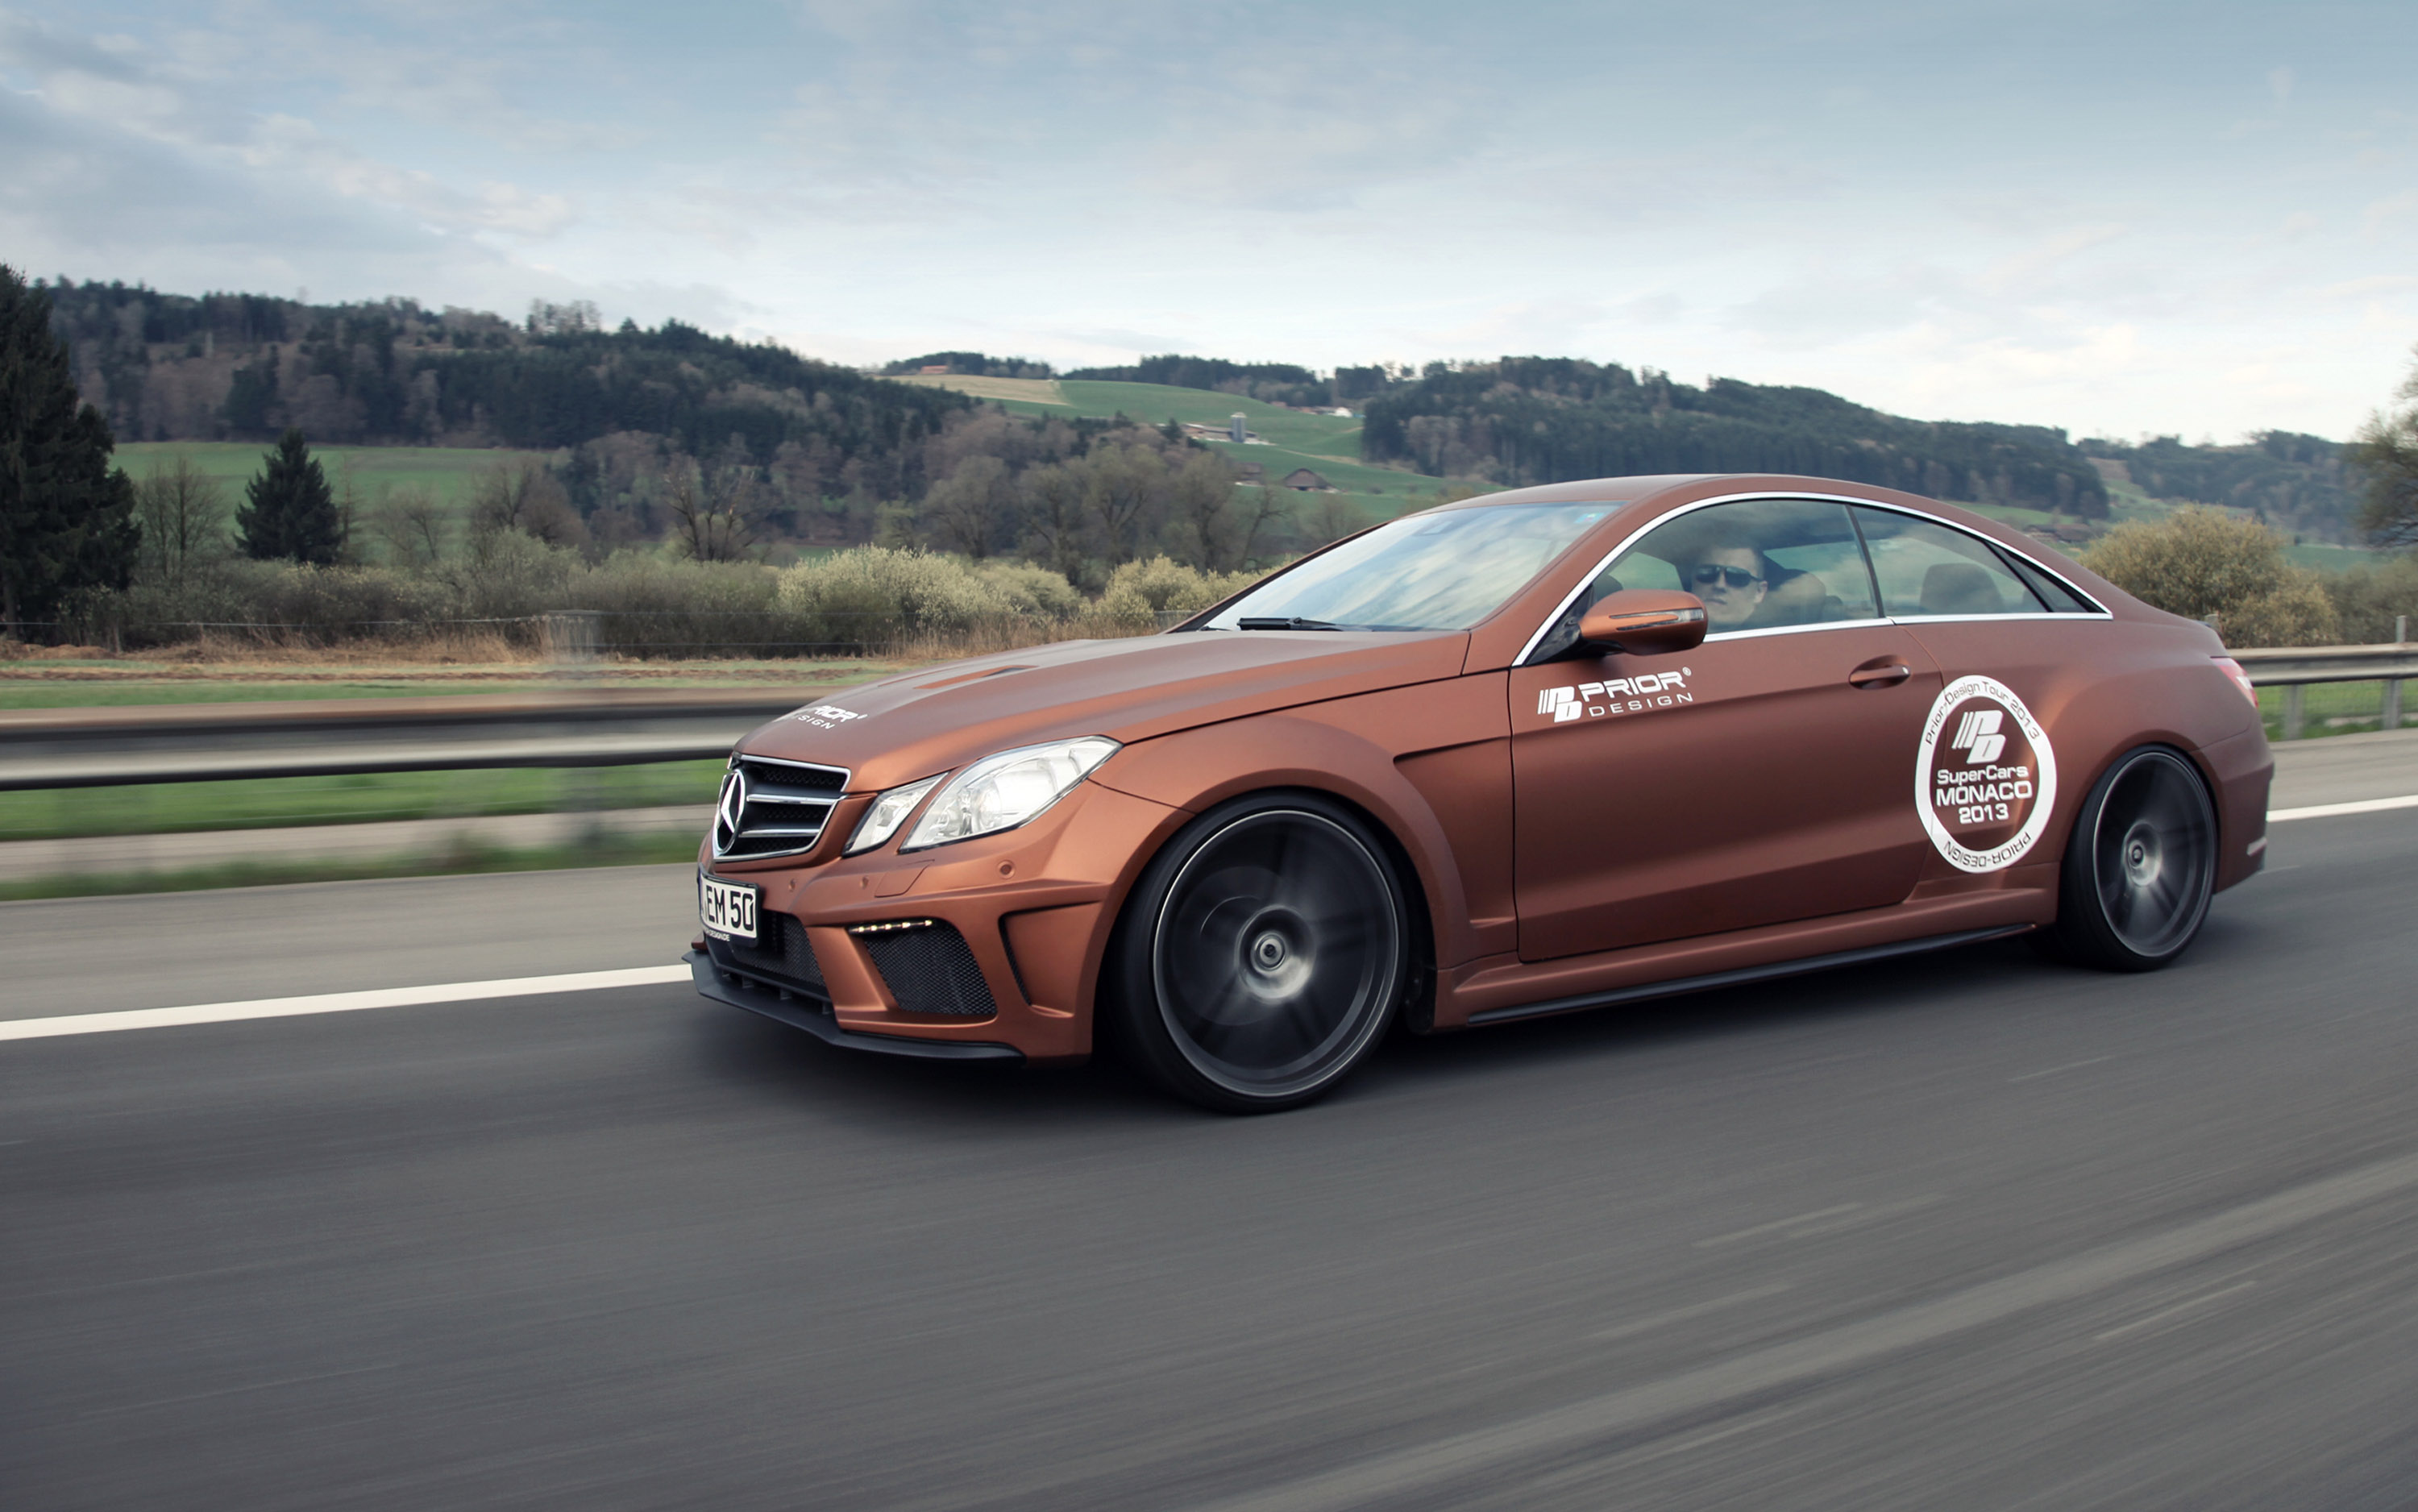 Mercedes E Class Coupe Pd850 Black Edition Widebody